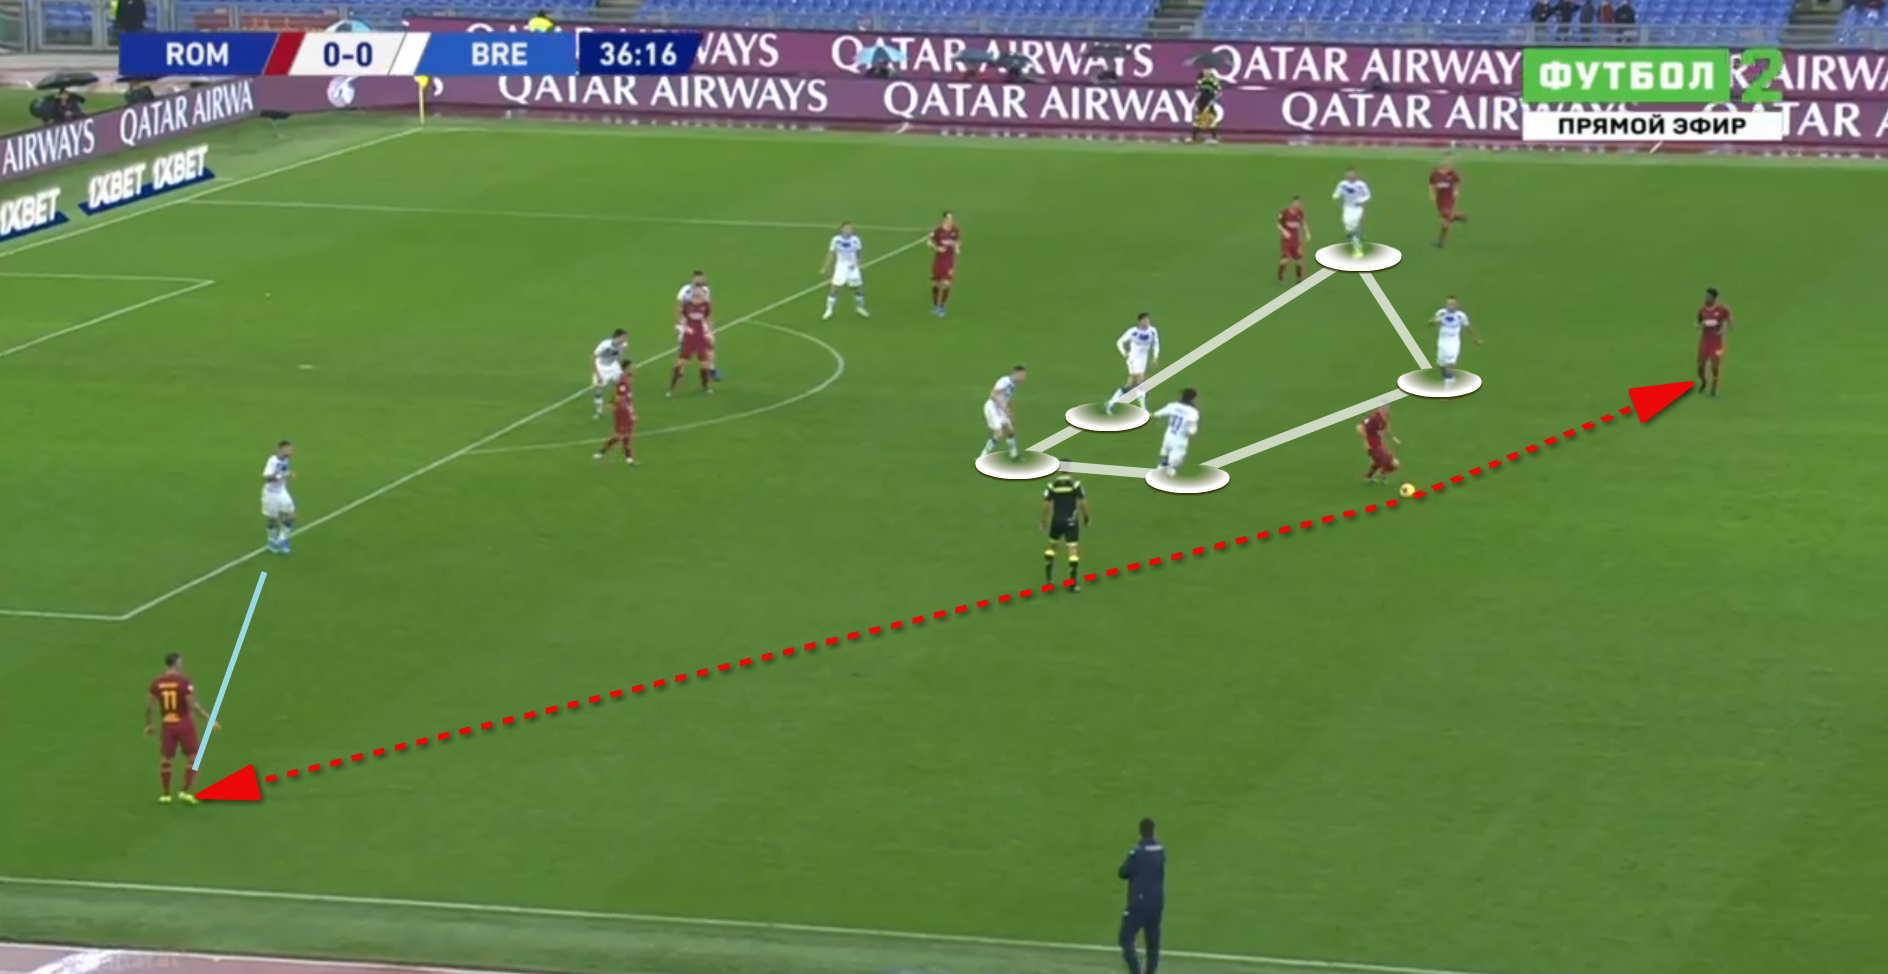 Serie A 2019/20: AS Roma vs Brescia Calcio - Tactical Analysis tactics